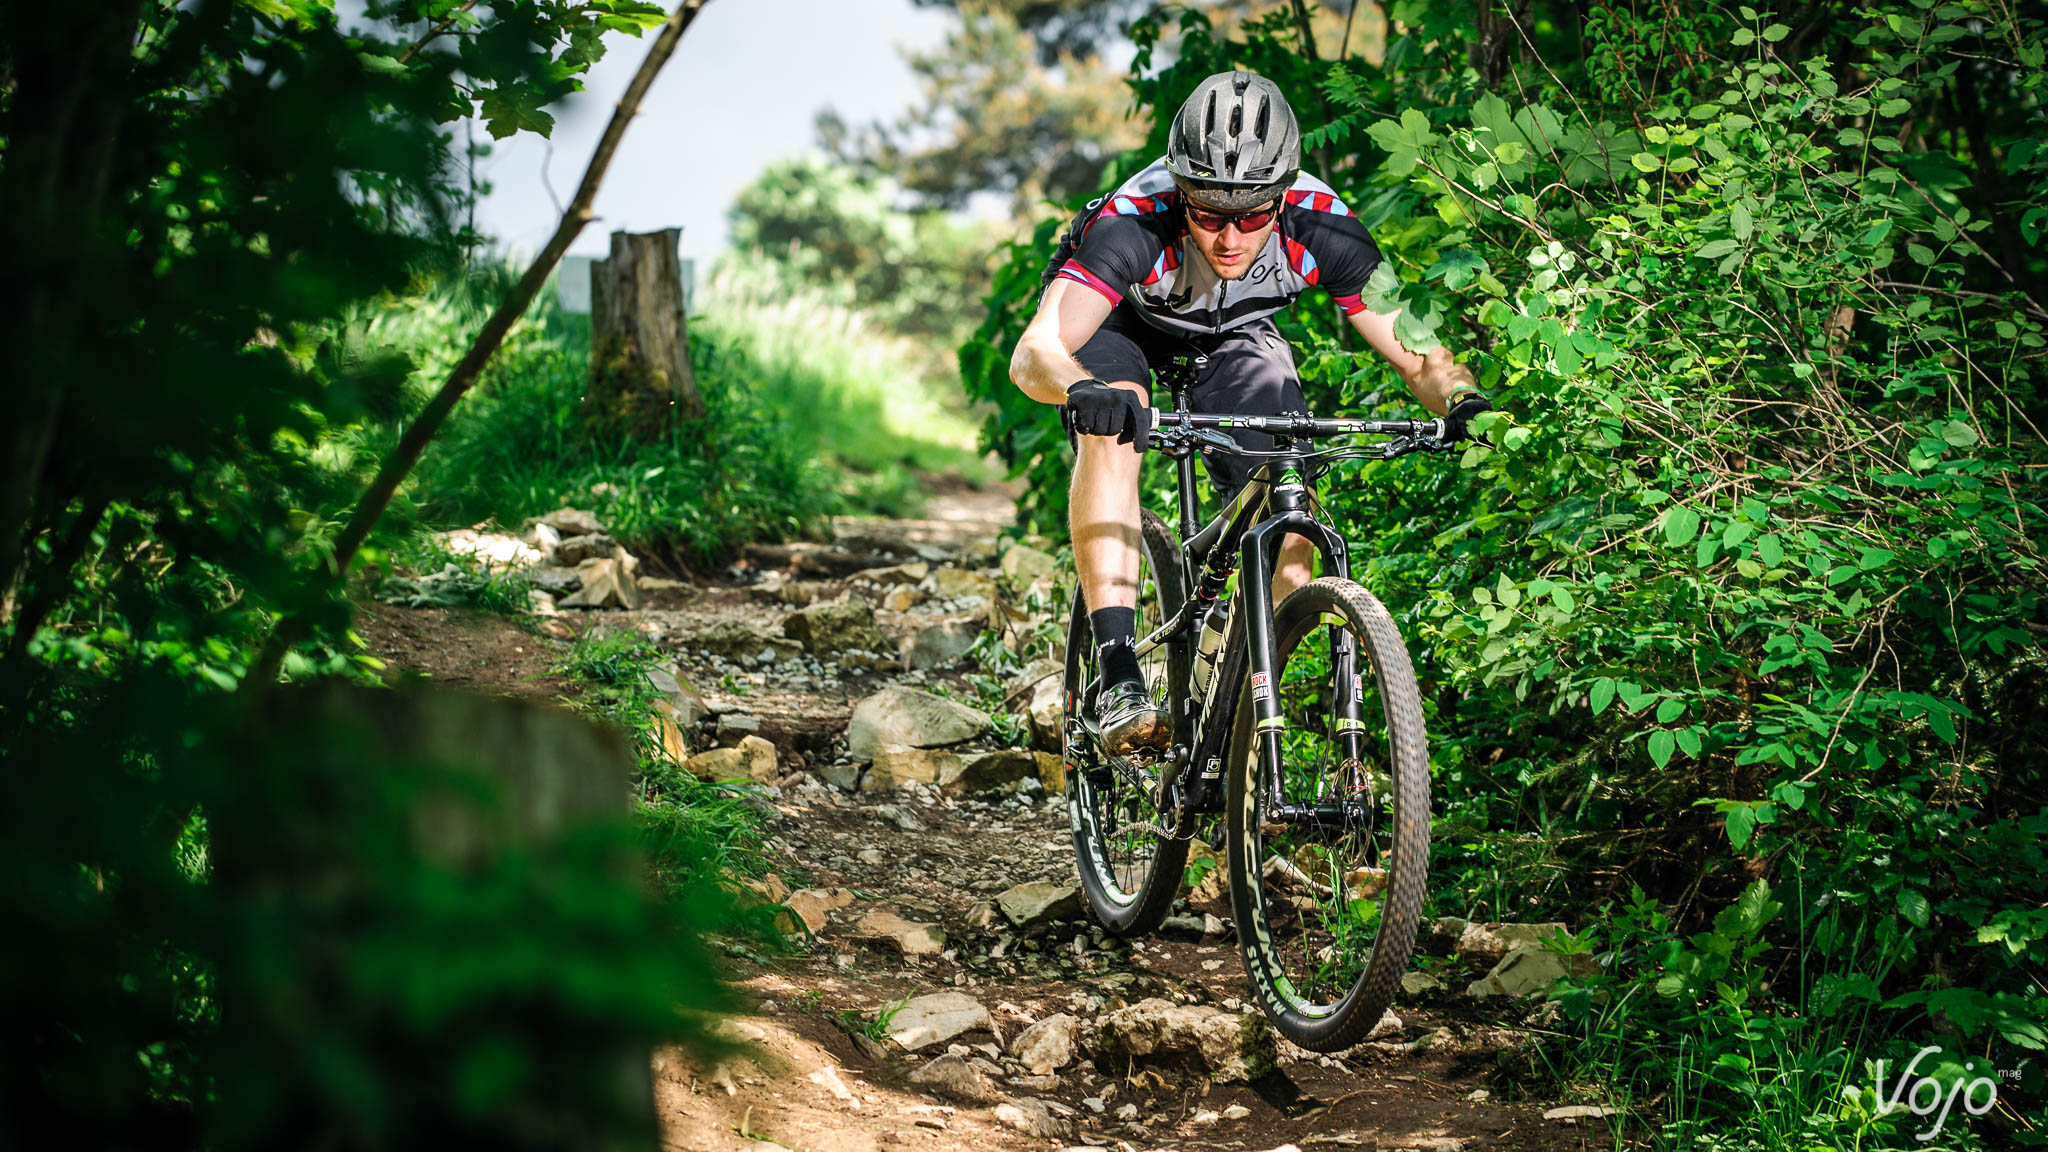 Merida_96_nouveaute_2016_Action_test_Copyright_MTBCult_OBeart_VojoMag-6